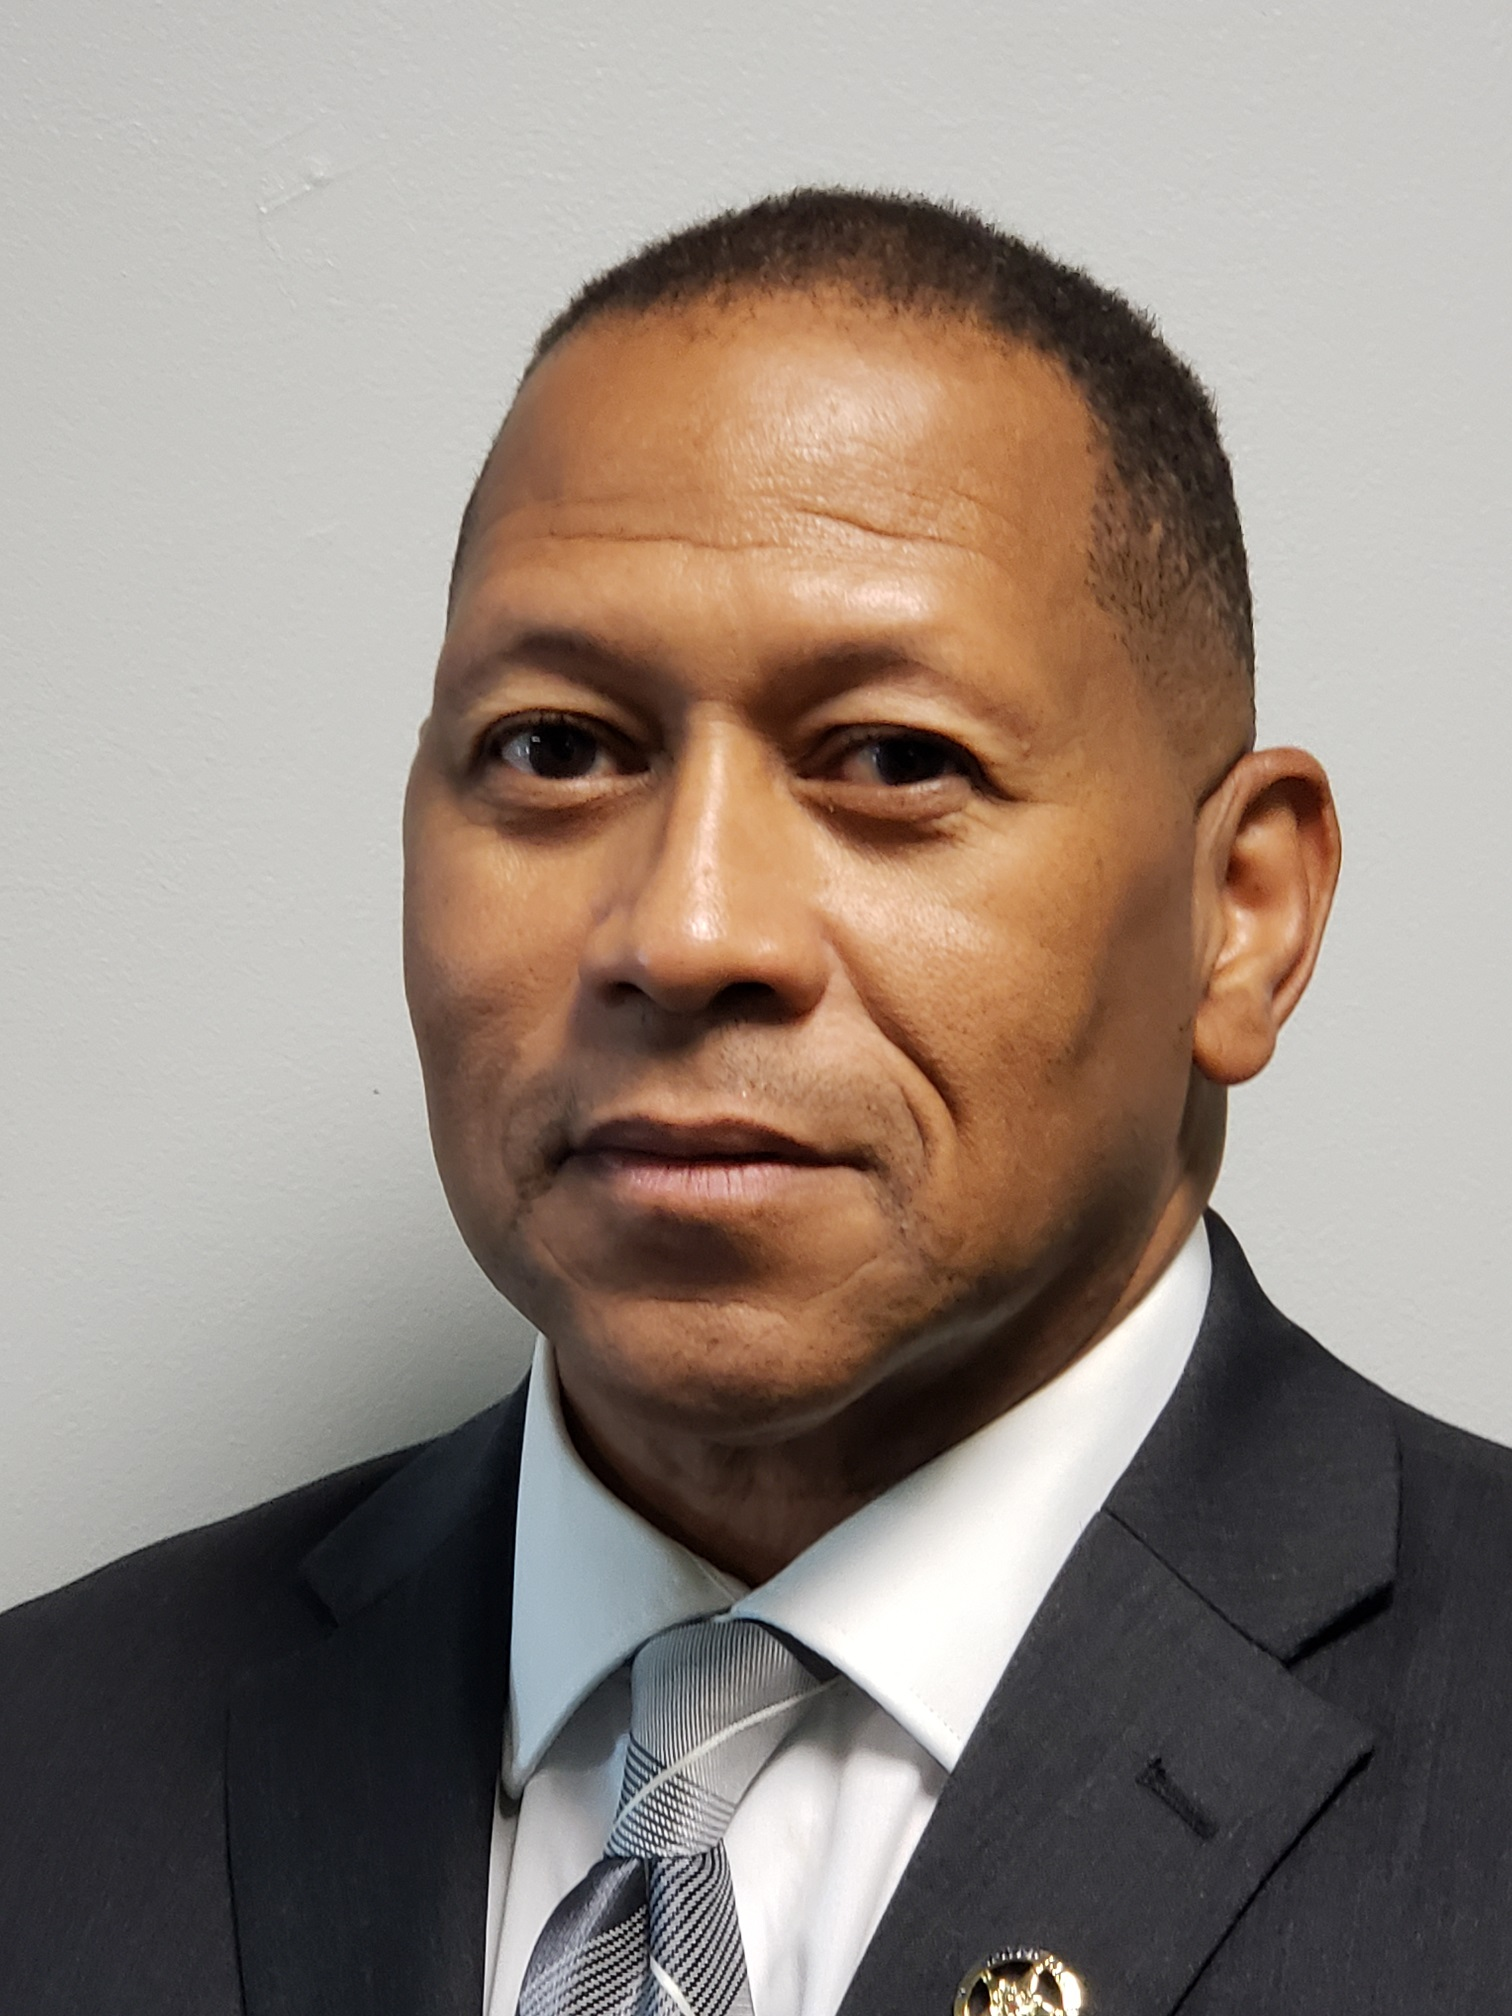 Kent State University alumnus Benjamin Holbert III, mayor of the Village of Woodmere, Ohio, will serve as the Summer 2019 Commencement speaker for the morning ceremony at his alma mater.